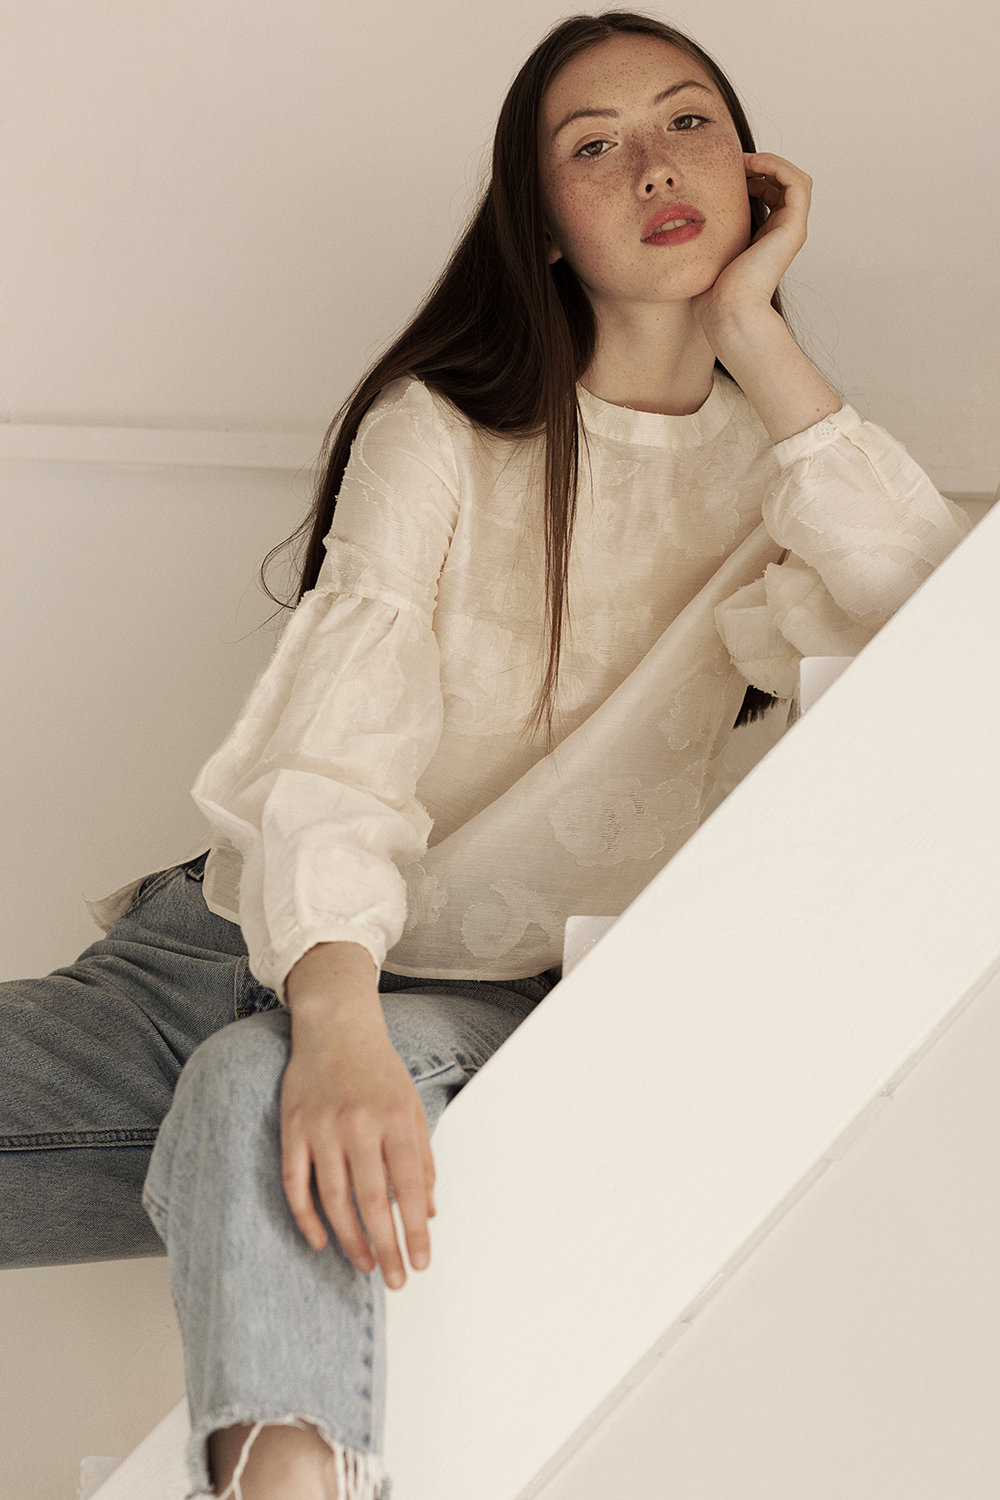 Blouse by Kelly Love @Young British Designers Jeans by Levi ́s